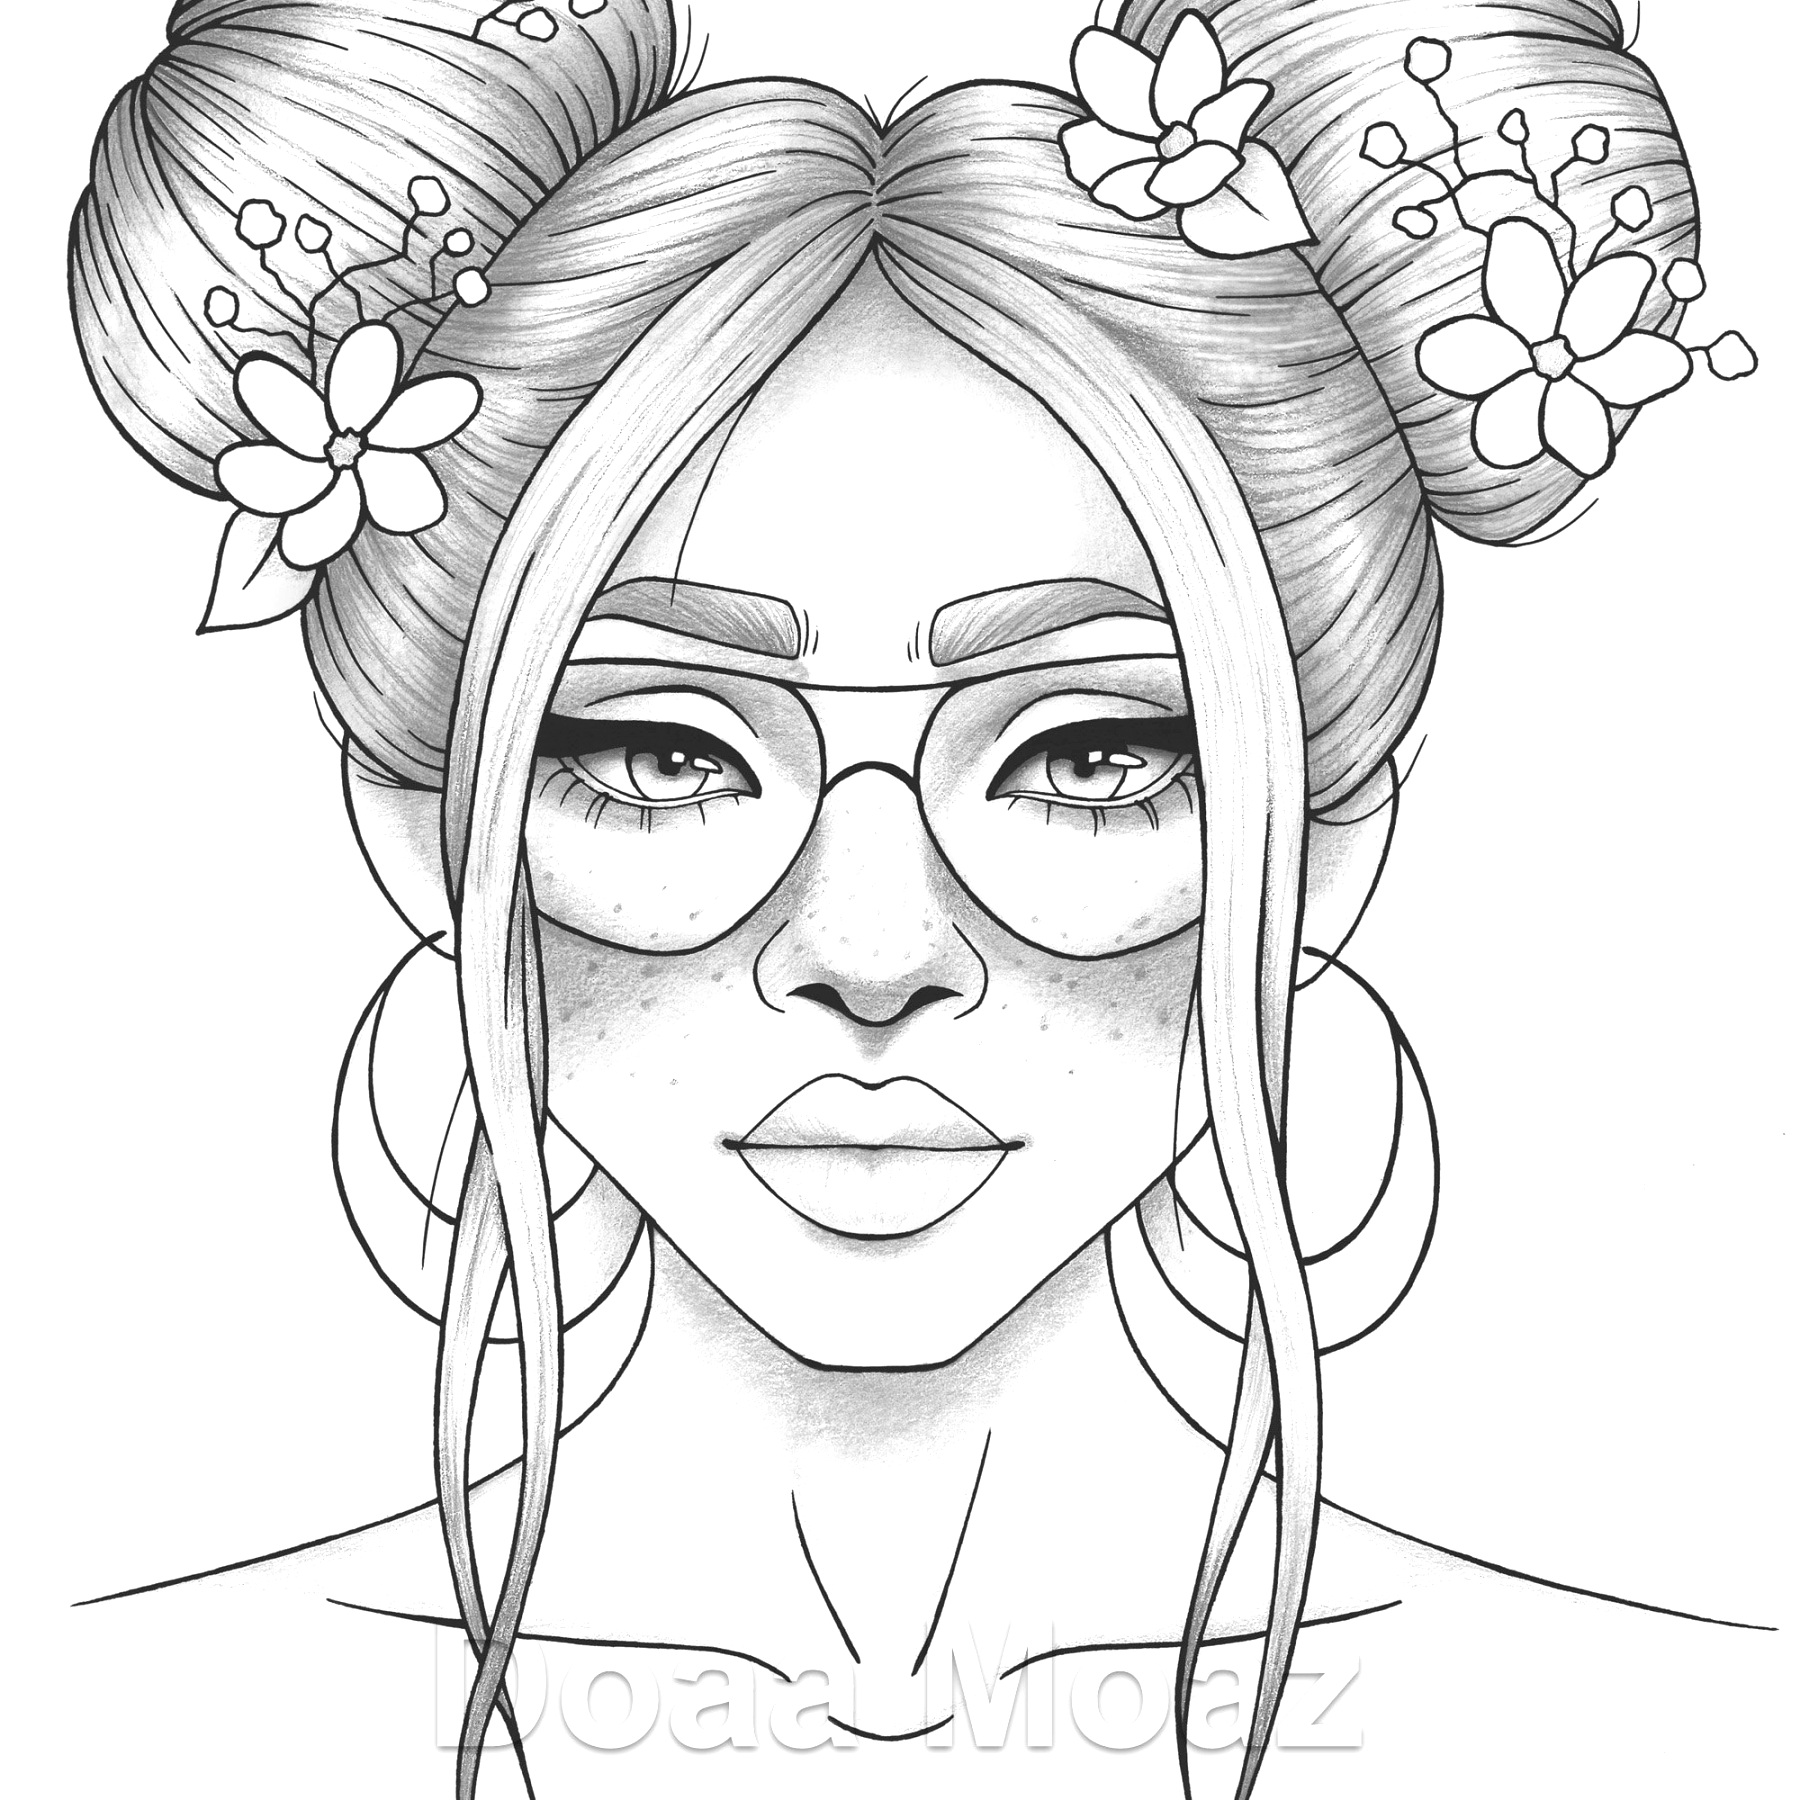 Enjoyable printable coloring pages download for free